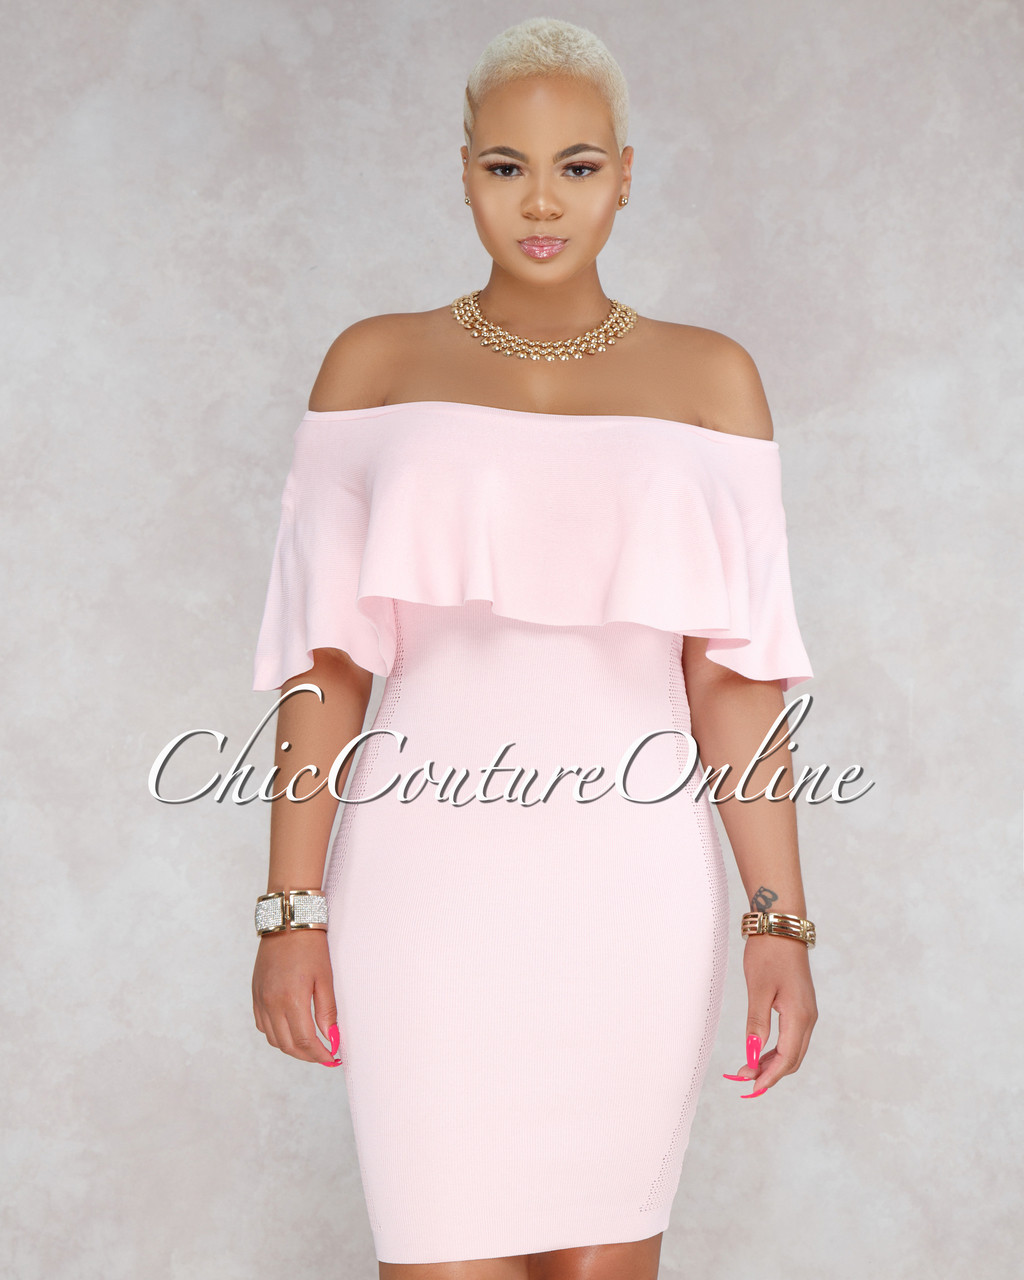 b86b75afba6f Sonnie Light Pink Ruffle Off The Shoulder Dress. Price   45.00. Image 1.  Larger   More Photos